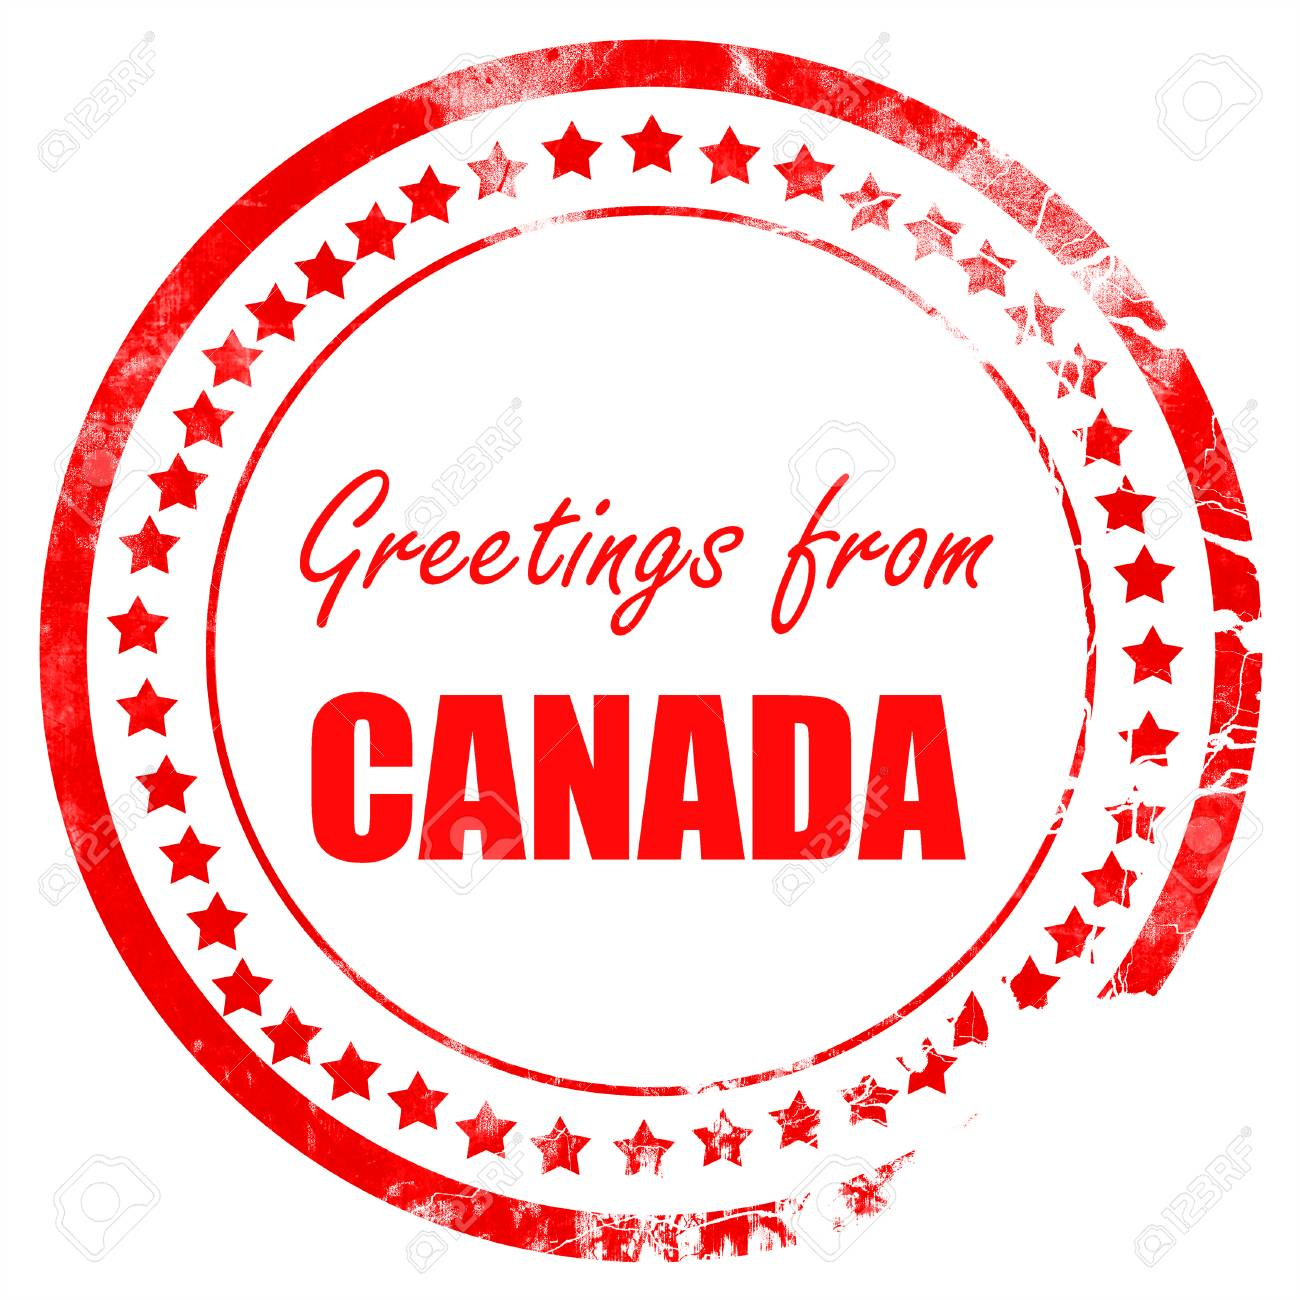 Greetings from canada card with some soft highlights stock photo greetings from canada card with some soft highlights stock photo 53784928 m4hsunfo